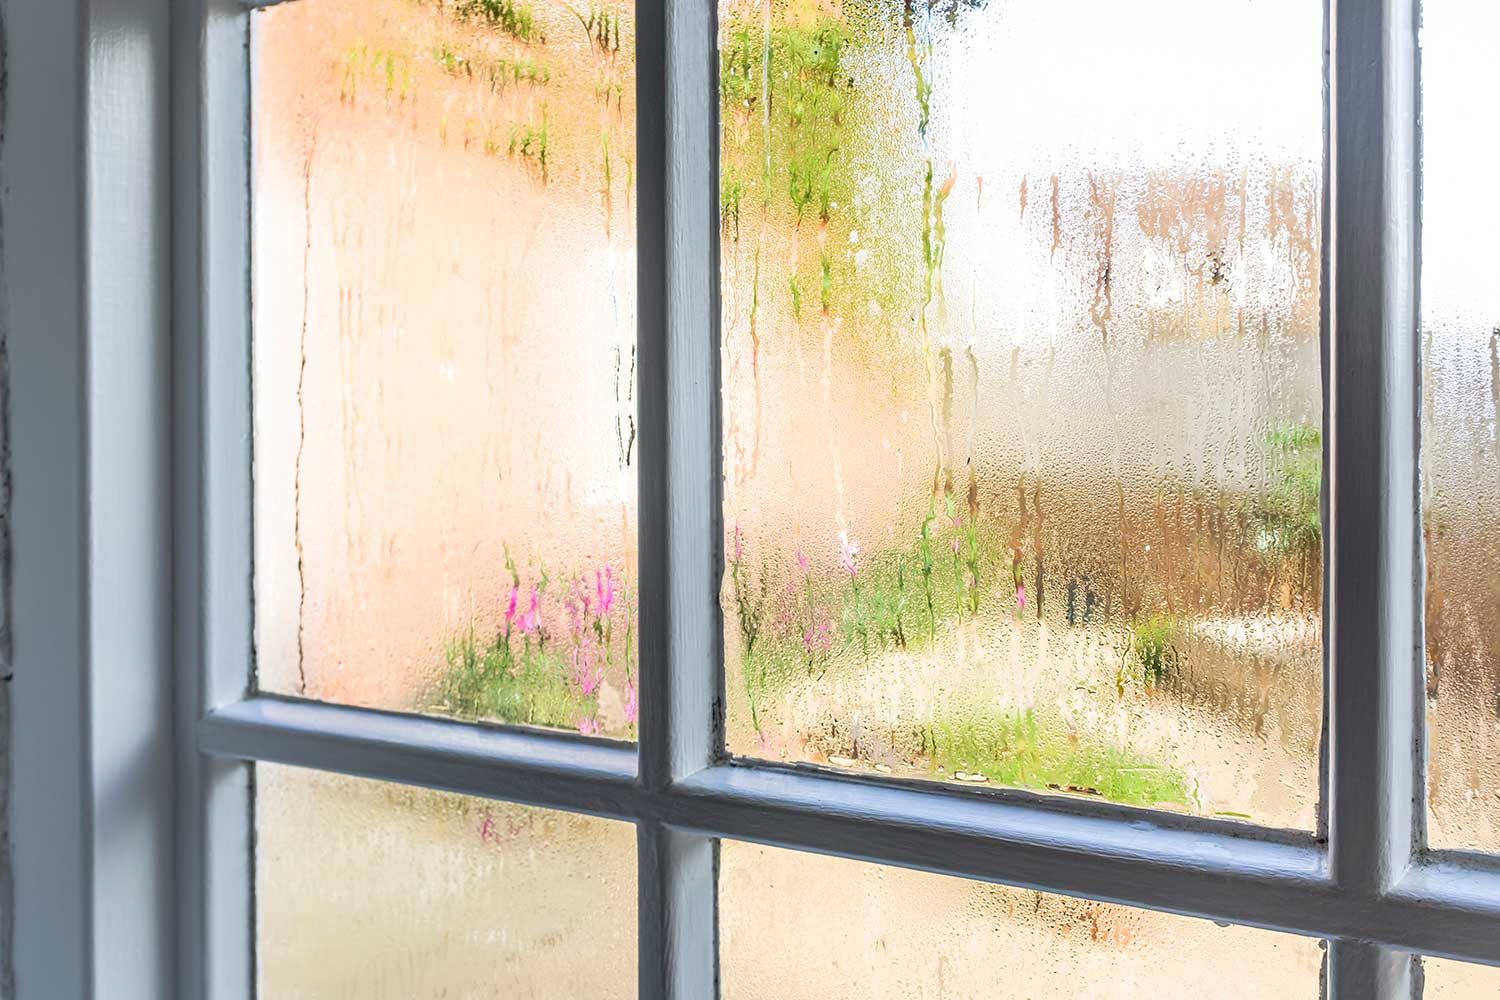 Condensation on an old window pane of a home